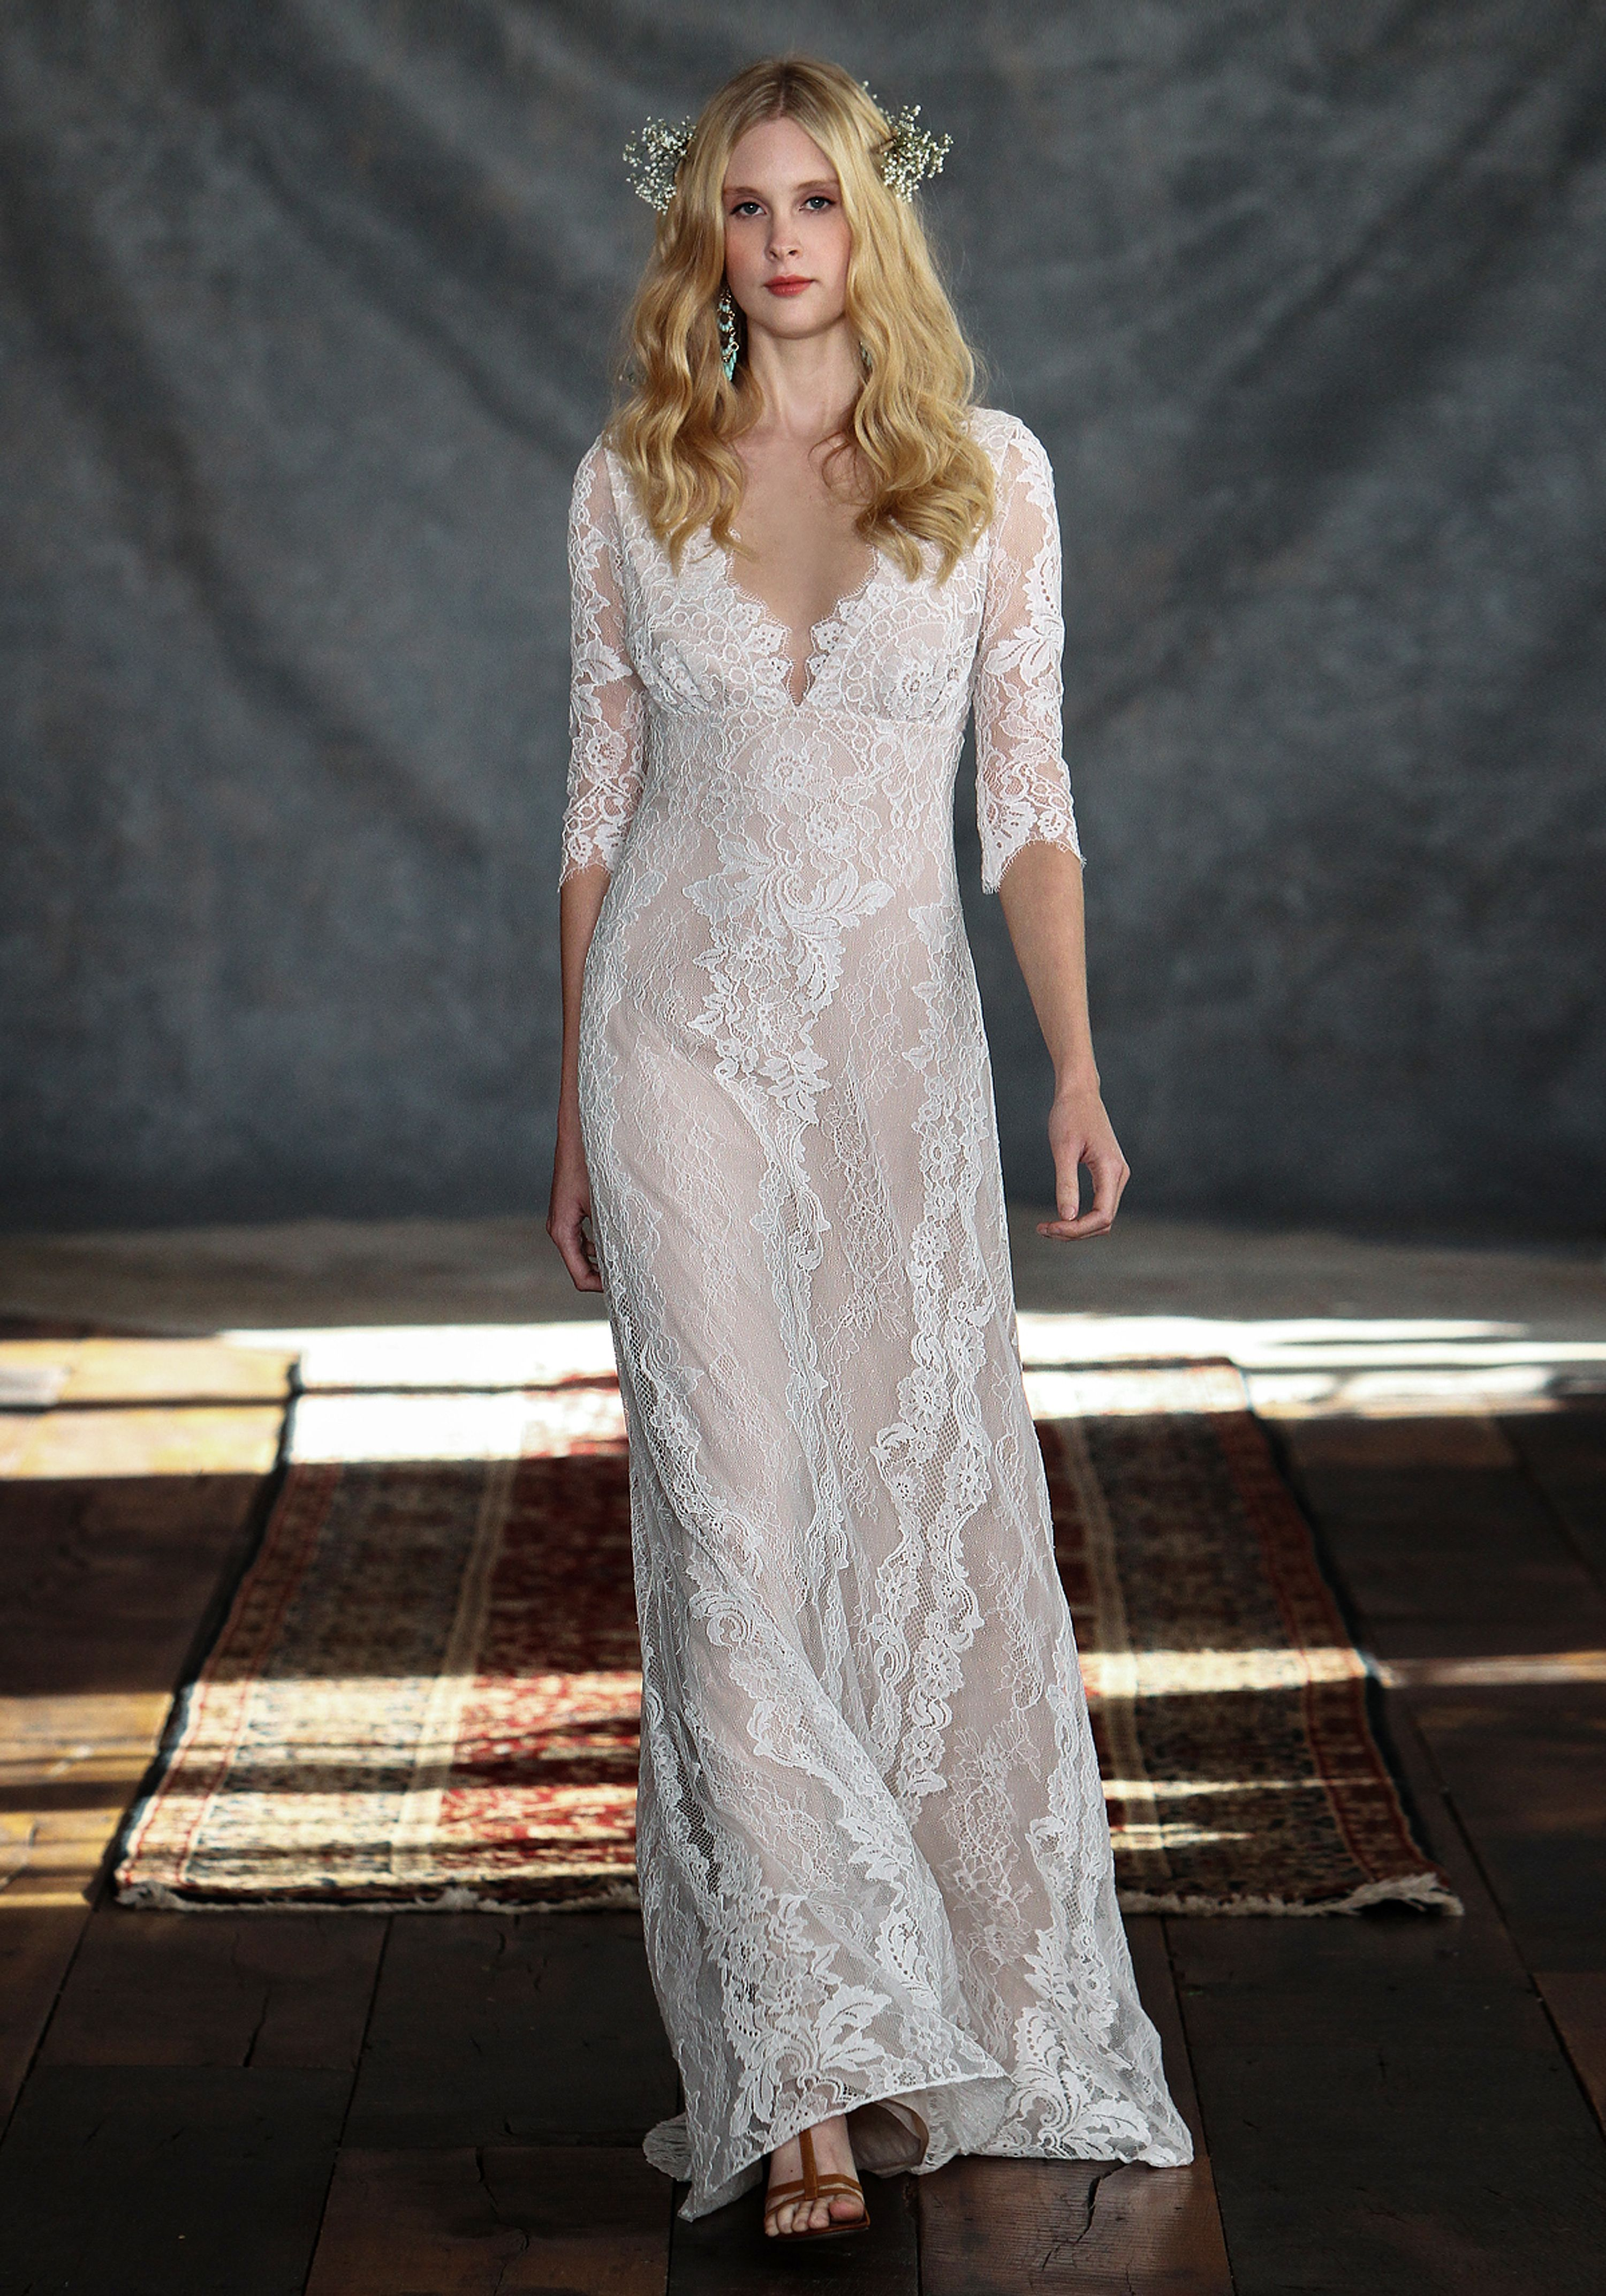 Wedding gowns galore see the dress and tux options for todayus